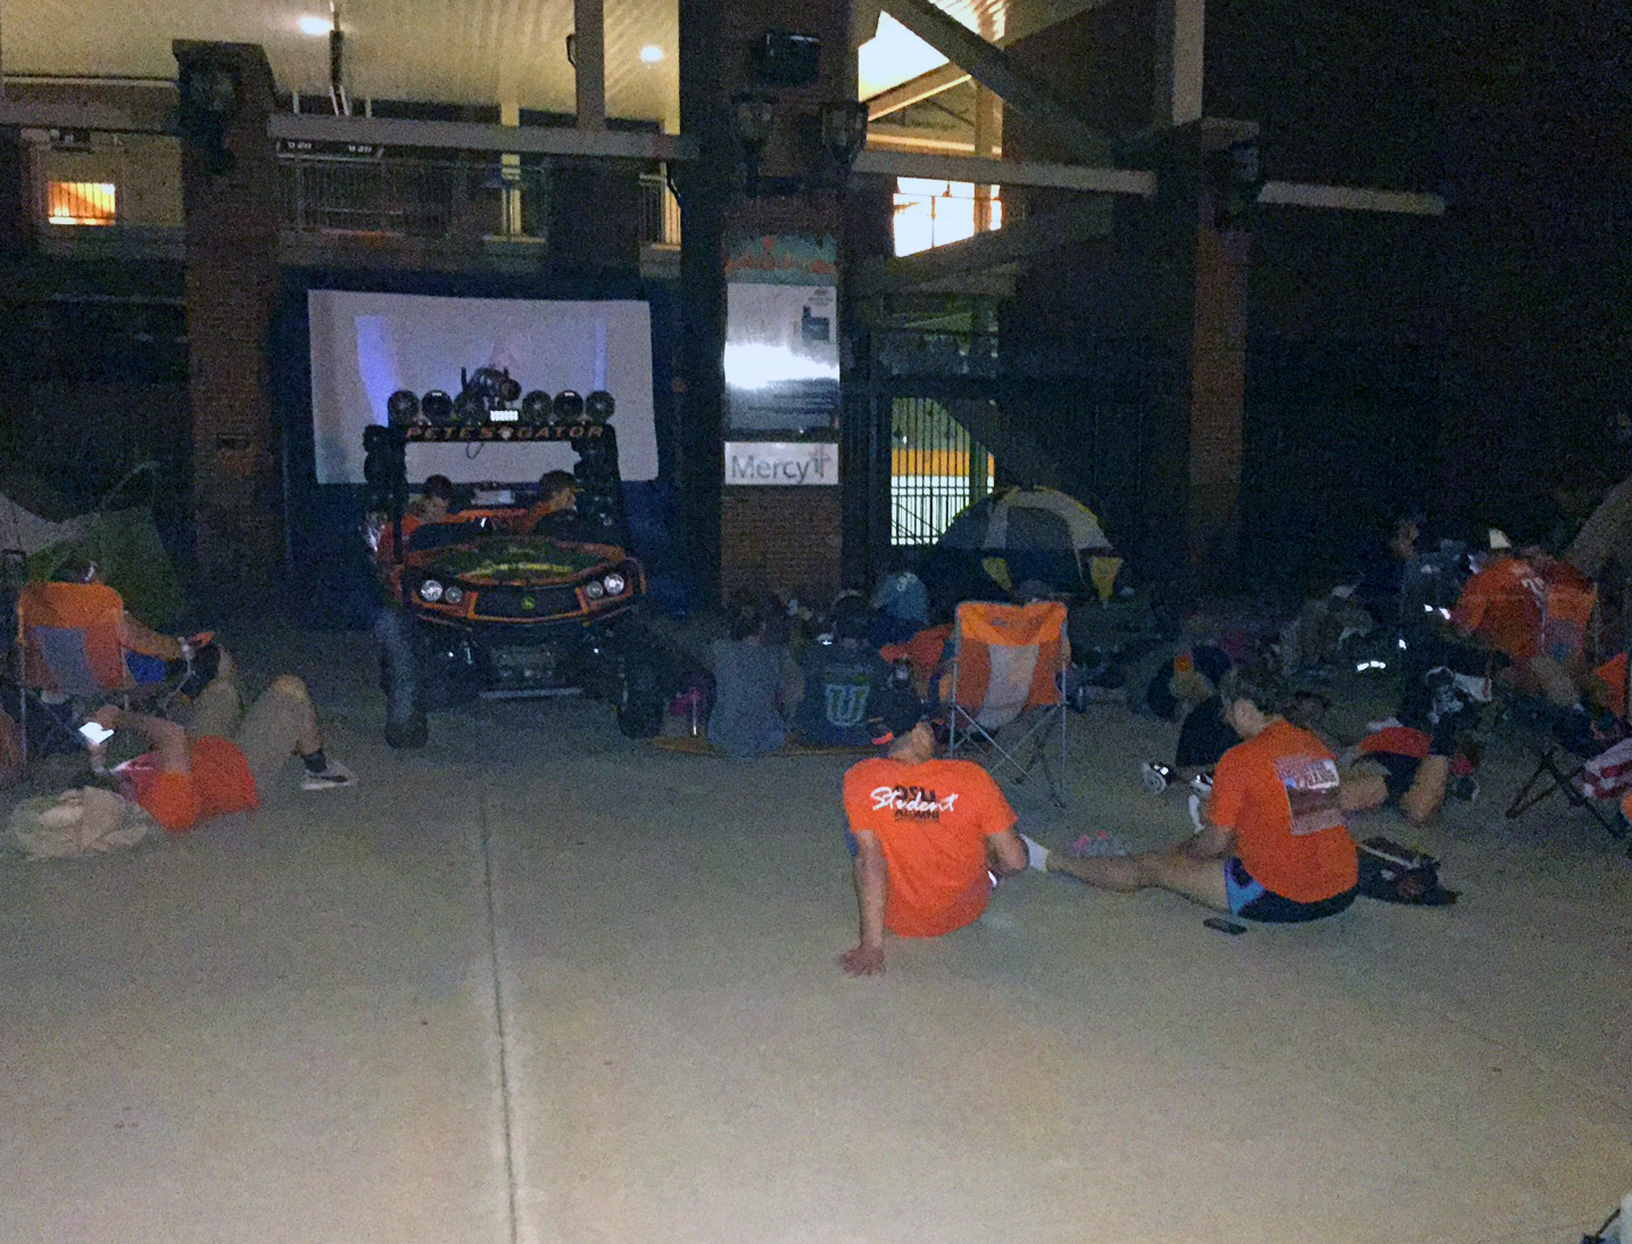 Campers watch a movie at a Rowdy campout.